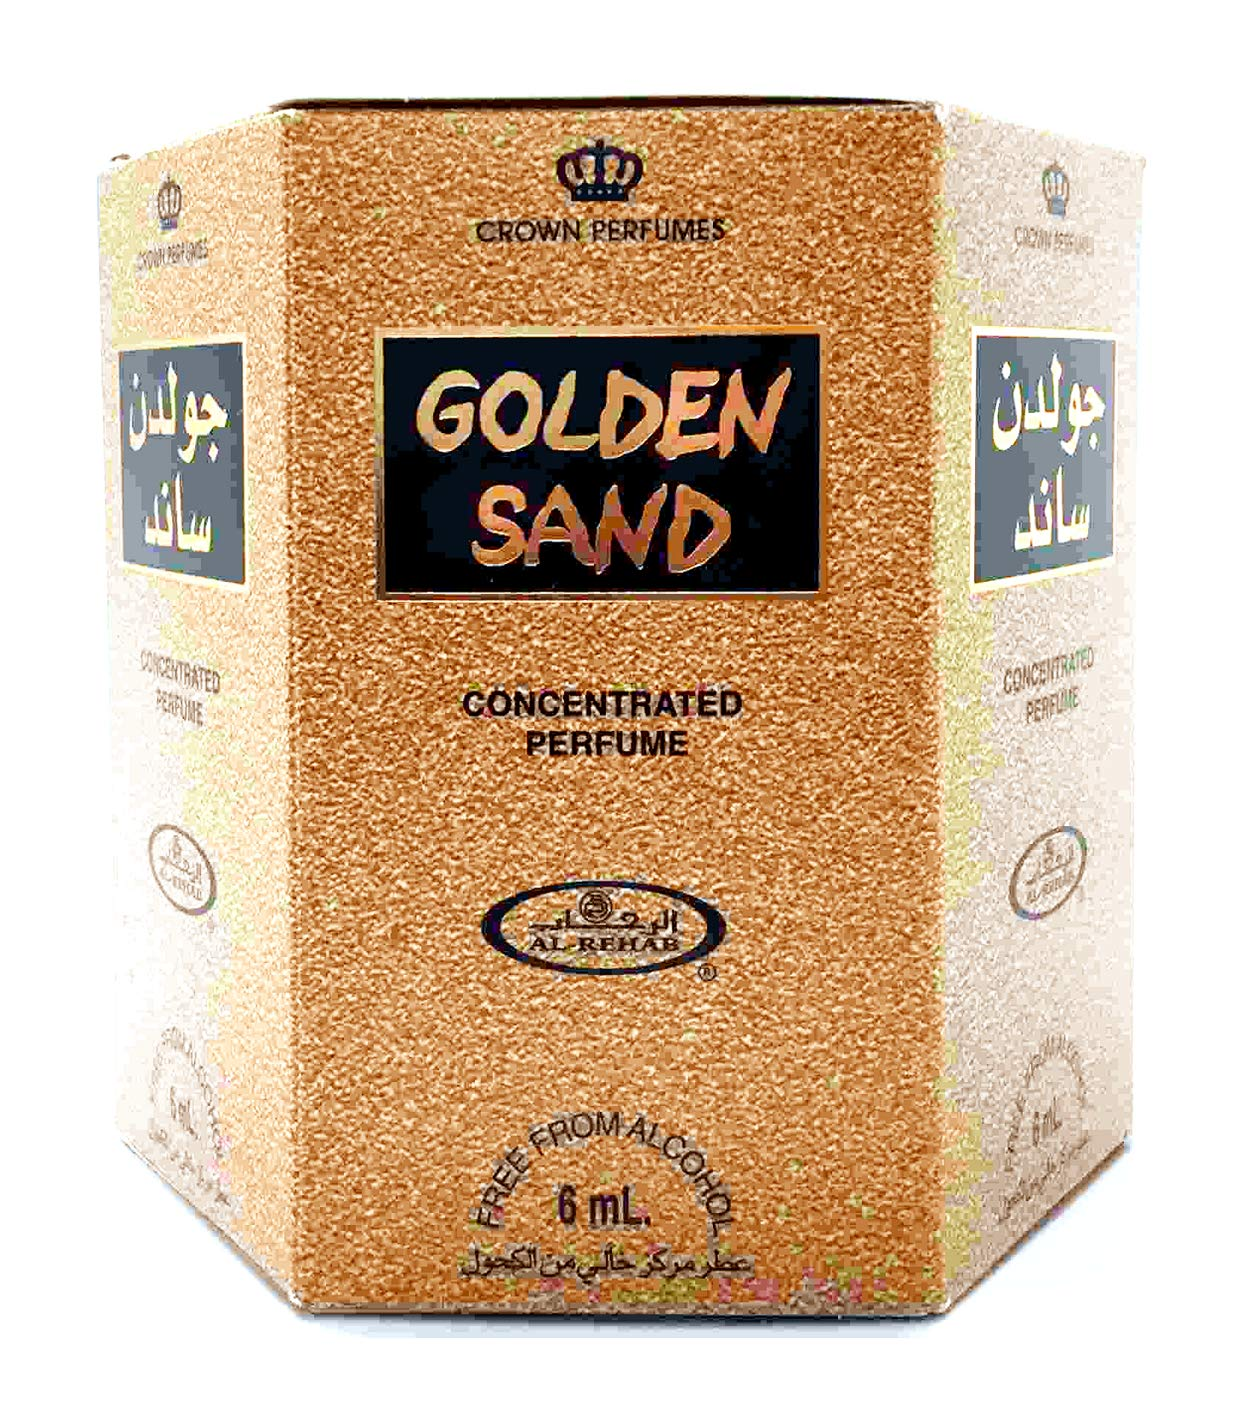 Golden Sand Perfume Oil - 6ml Roll On Perfume by Al-Rehab Crown Perfumes (Box of 6)